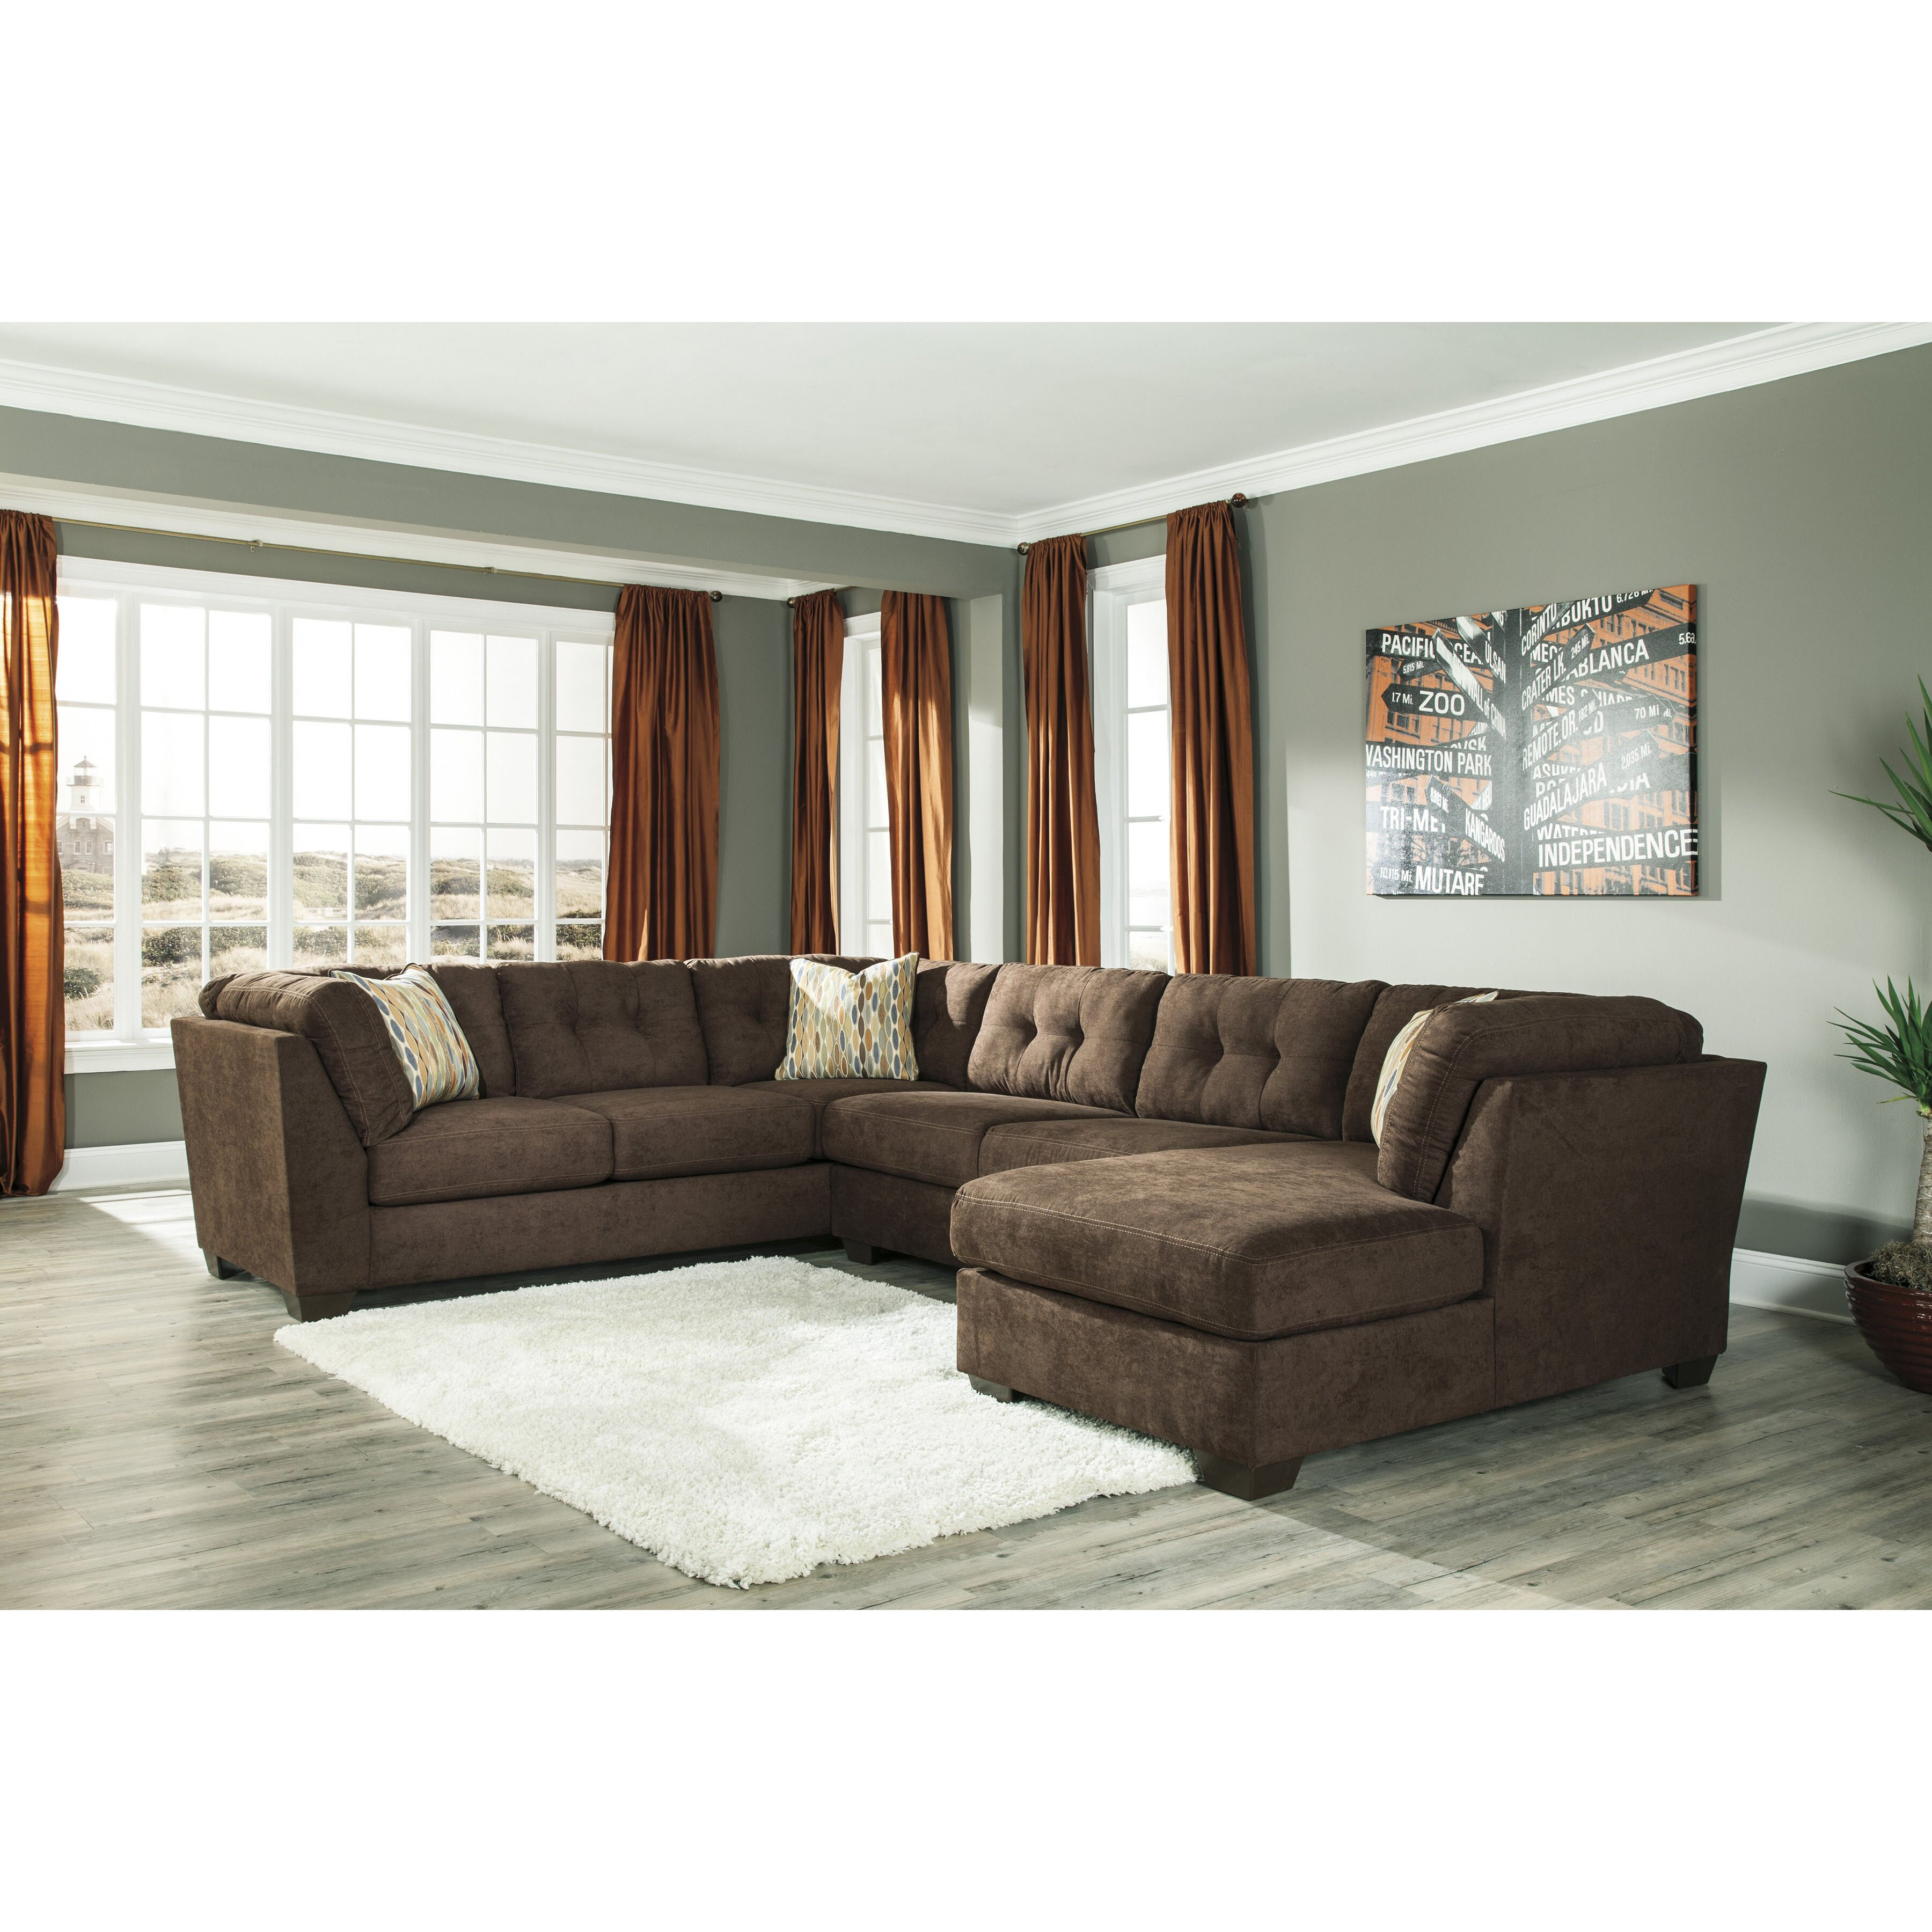 Ashley City Furniture: Benchcraft Delta City Right Sectional & Reviews